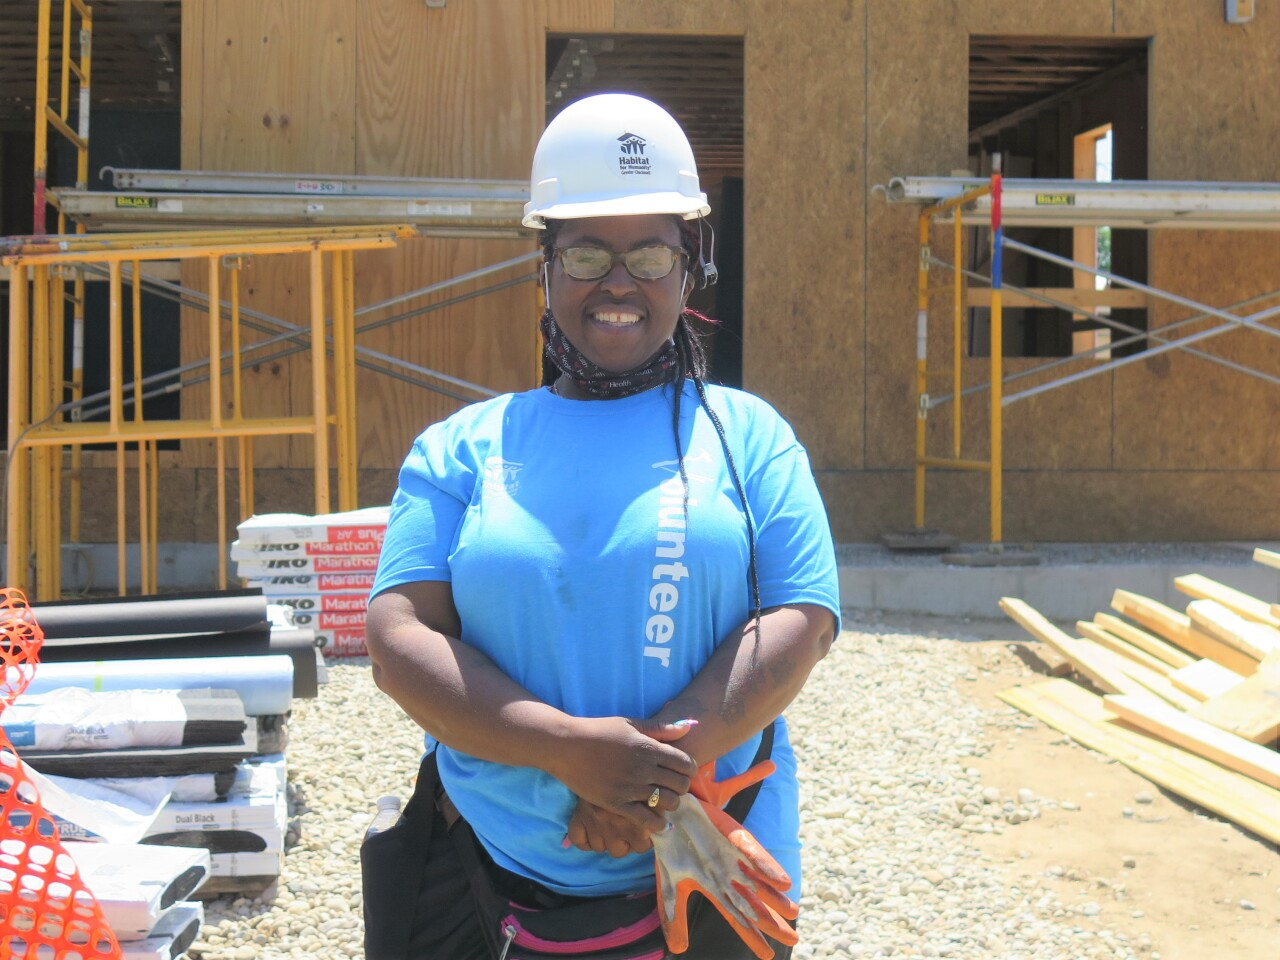 Shelisa Gilmore is smiling and wearing a white hardhat and blue t-shirt for this picture outside her Bond Hill duplex that is under construction.